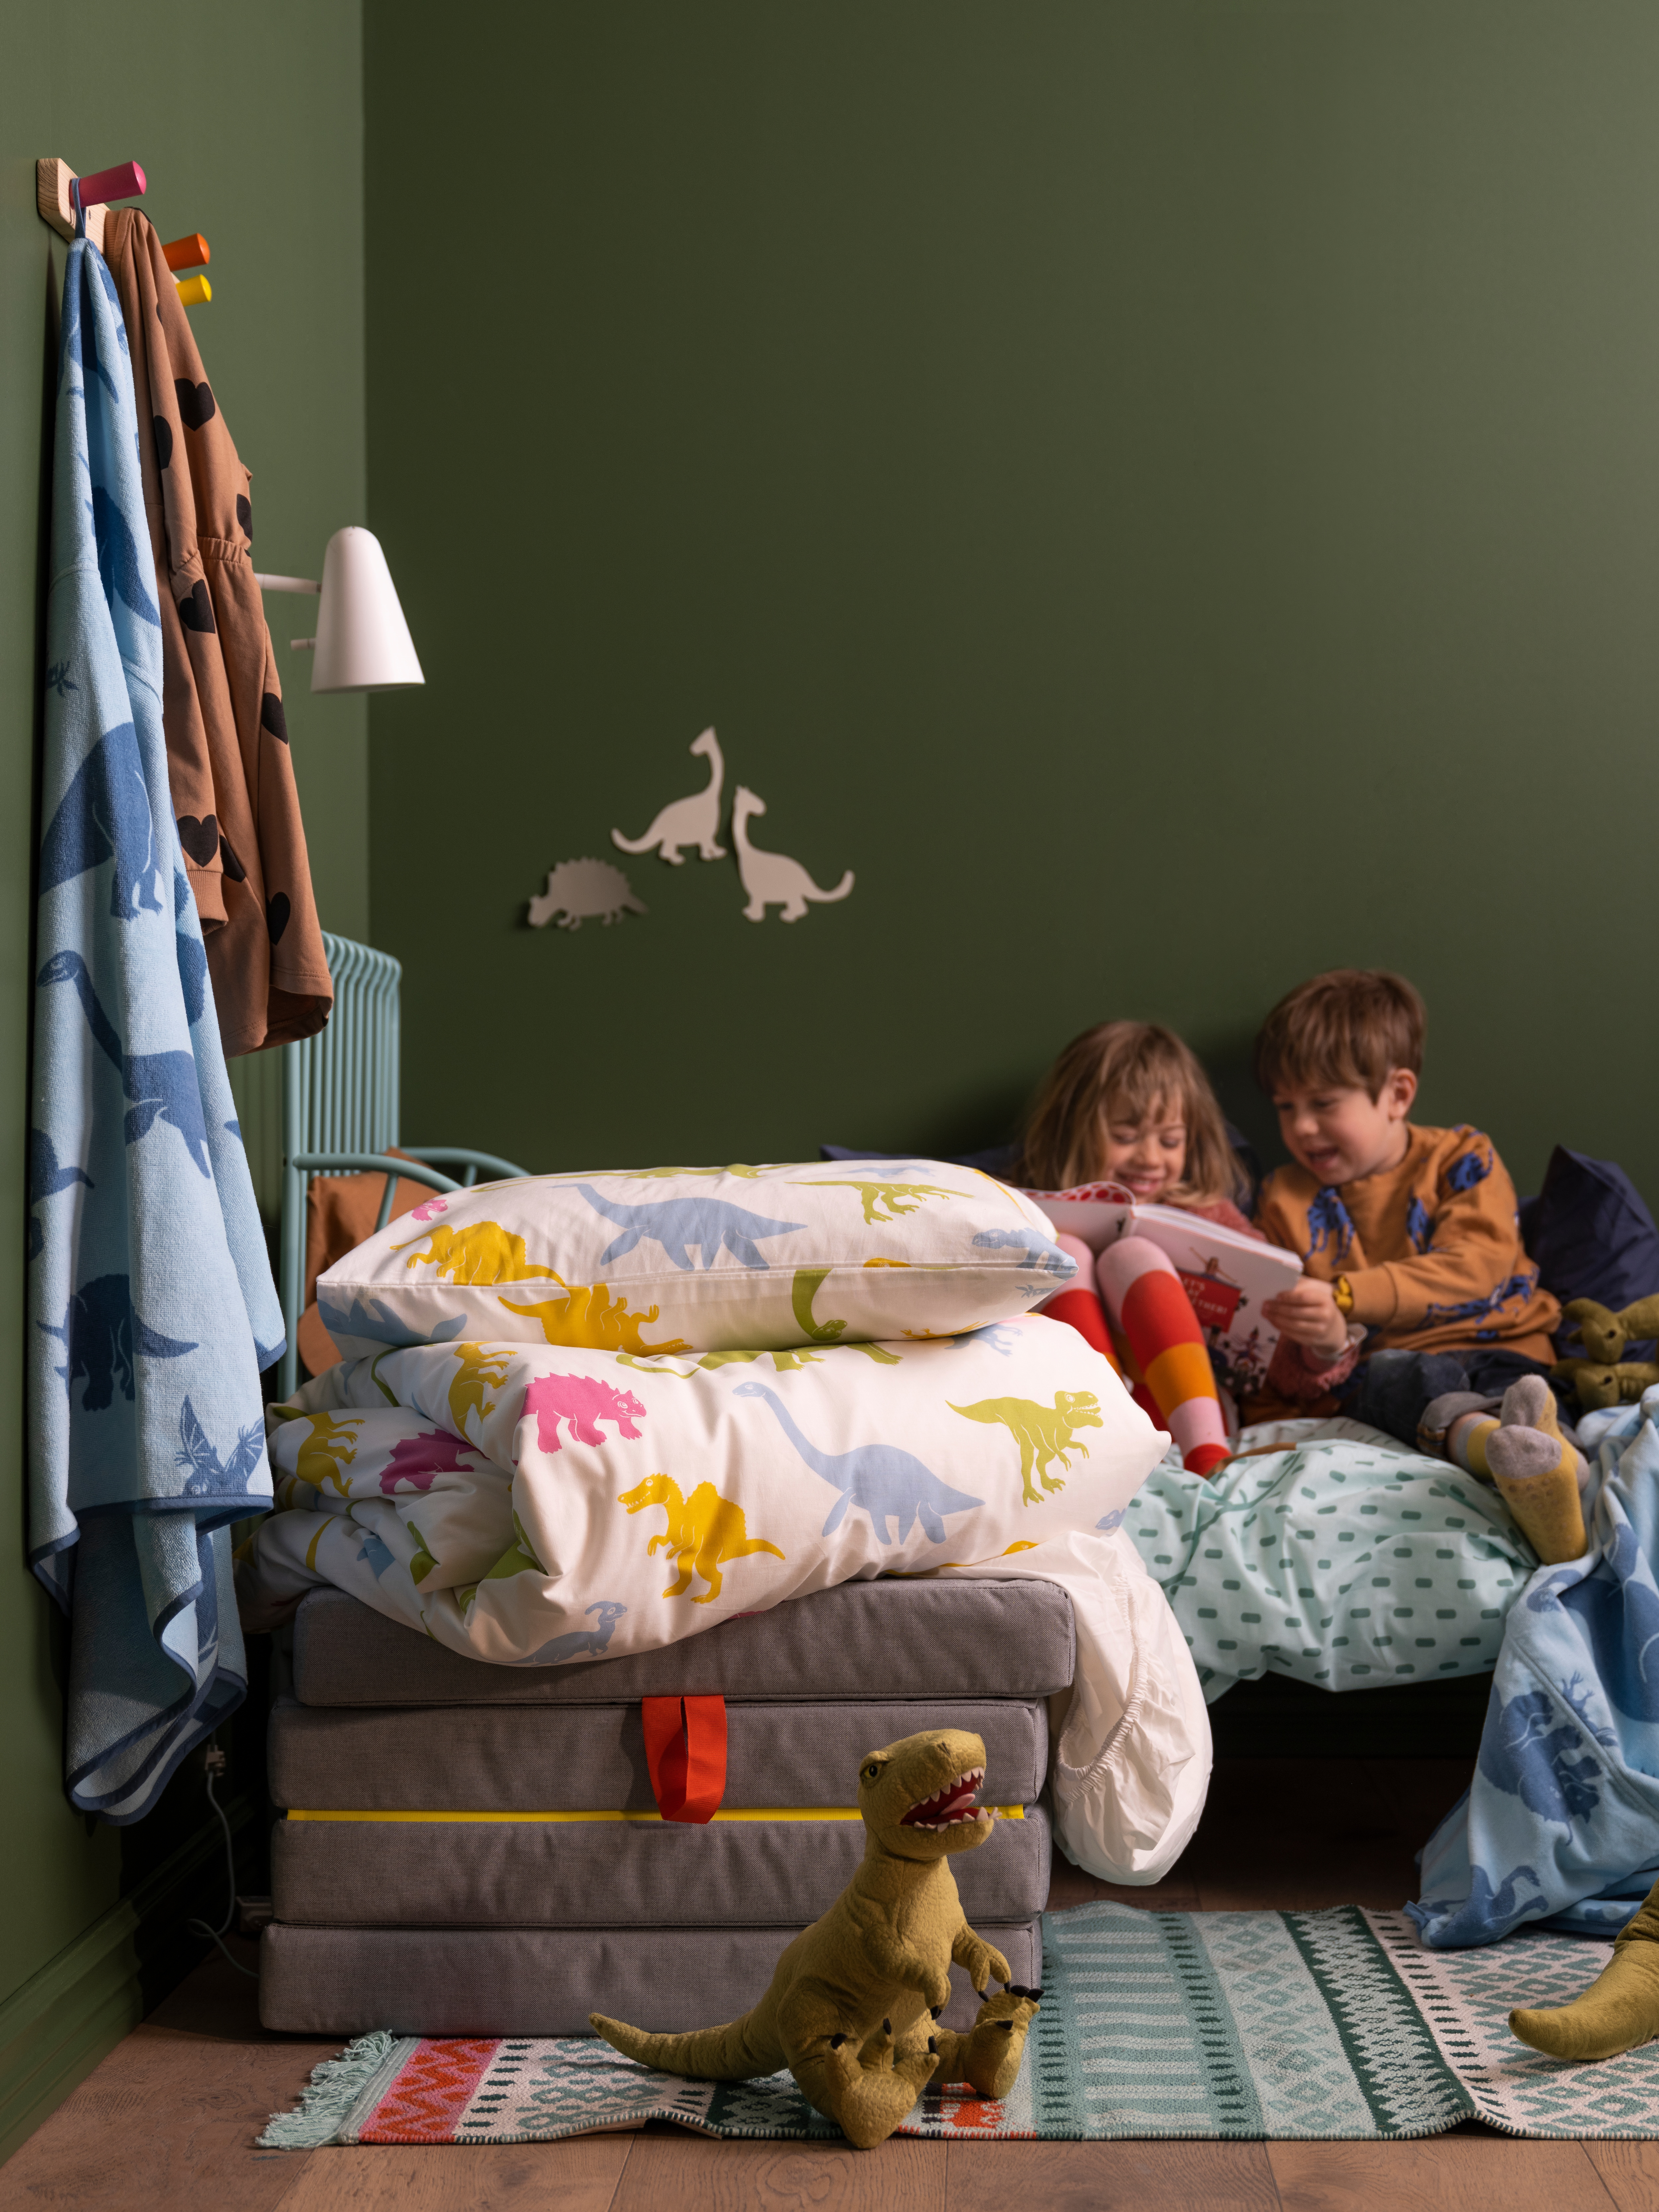 JÄTTELIK dinosaur-themed bed linen on bed, wall and floor next to two soft toy dinosaurs with two children in bed reading.